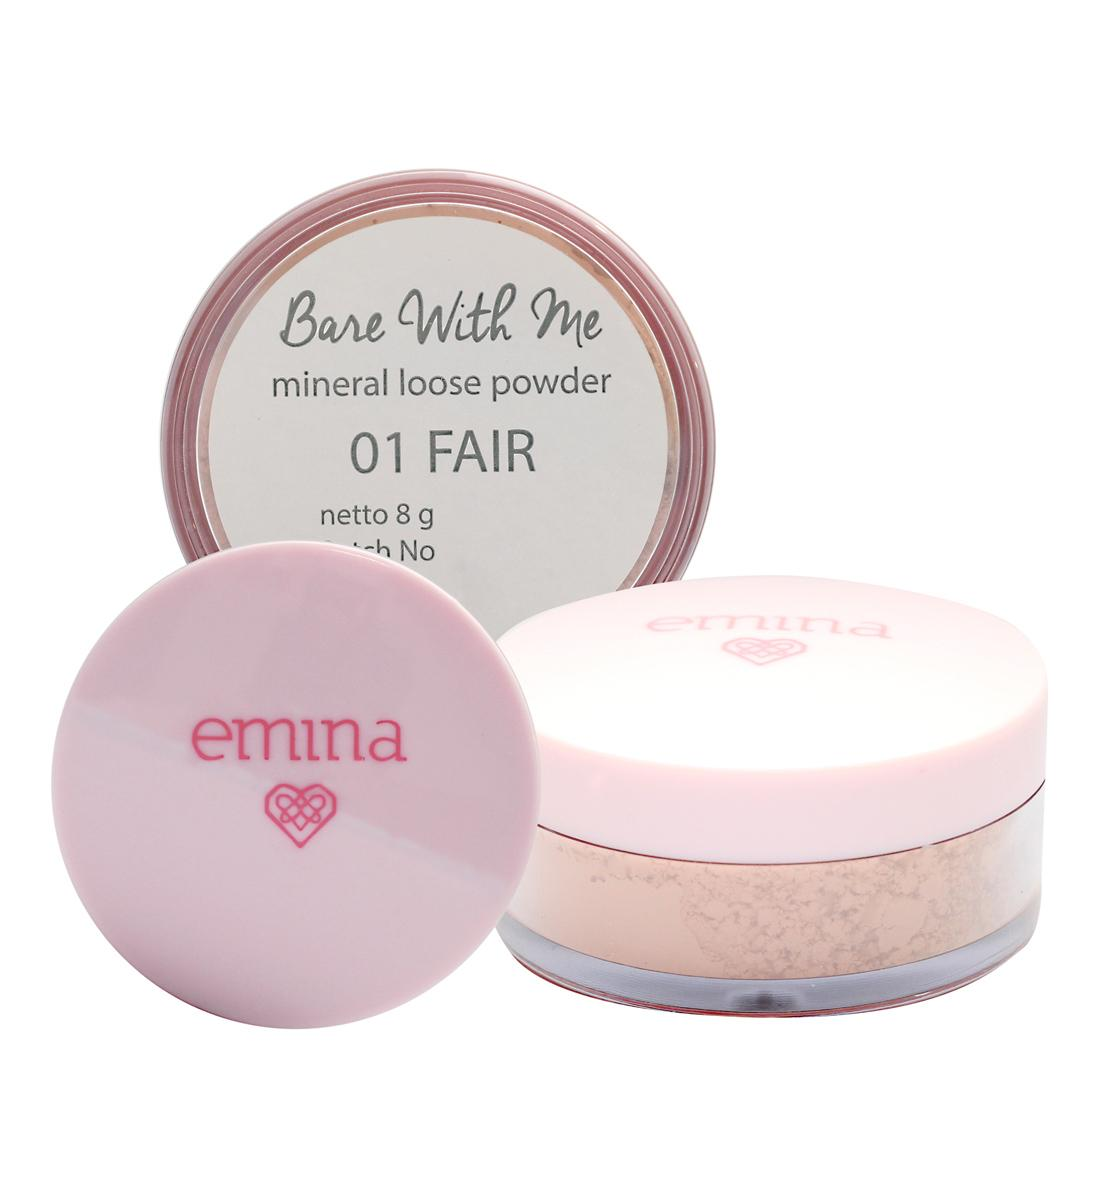 (0 Review). EMINA Bare With Me Loose Powder 01 Fair 8g